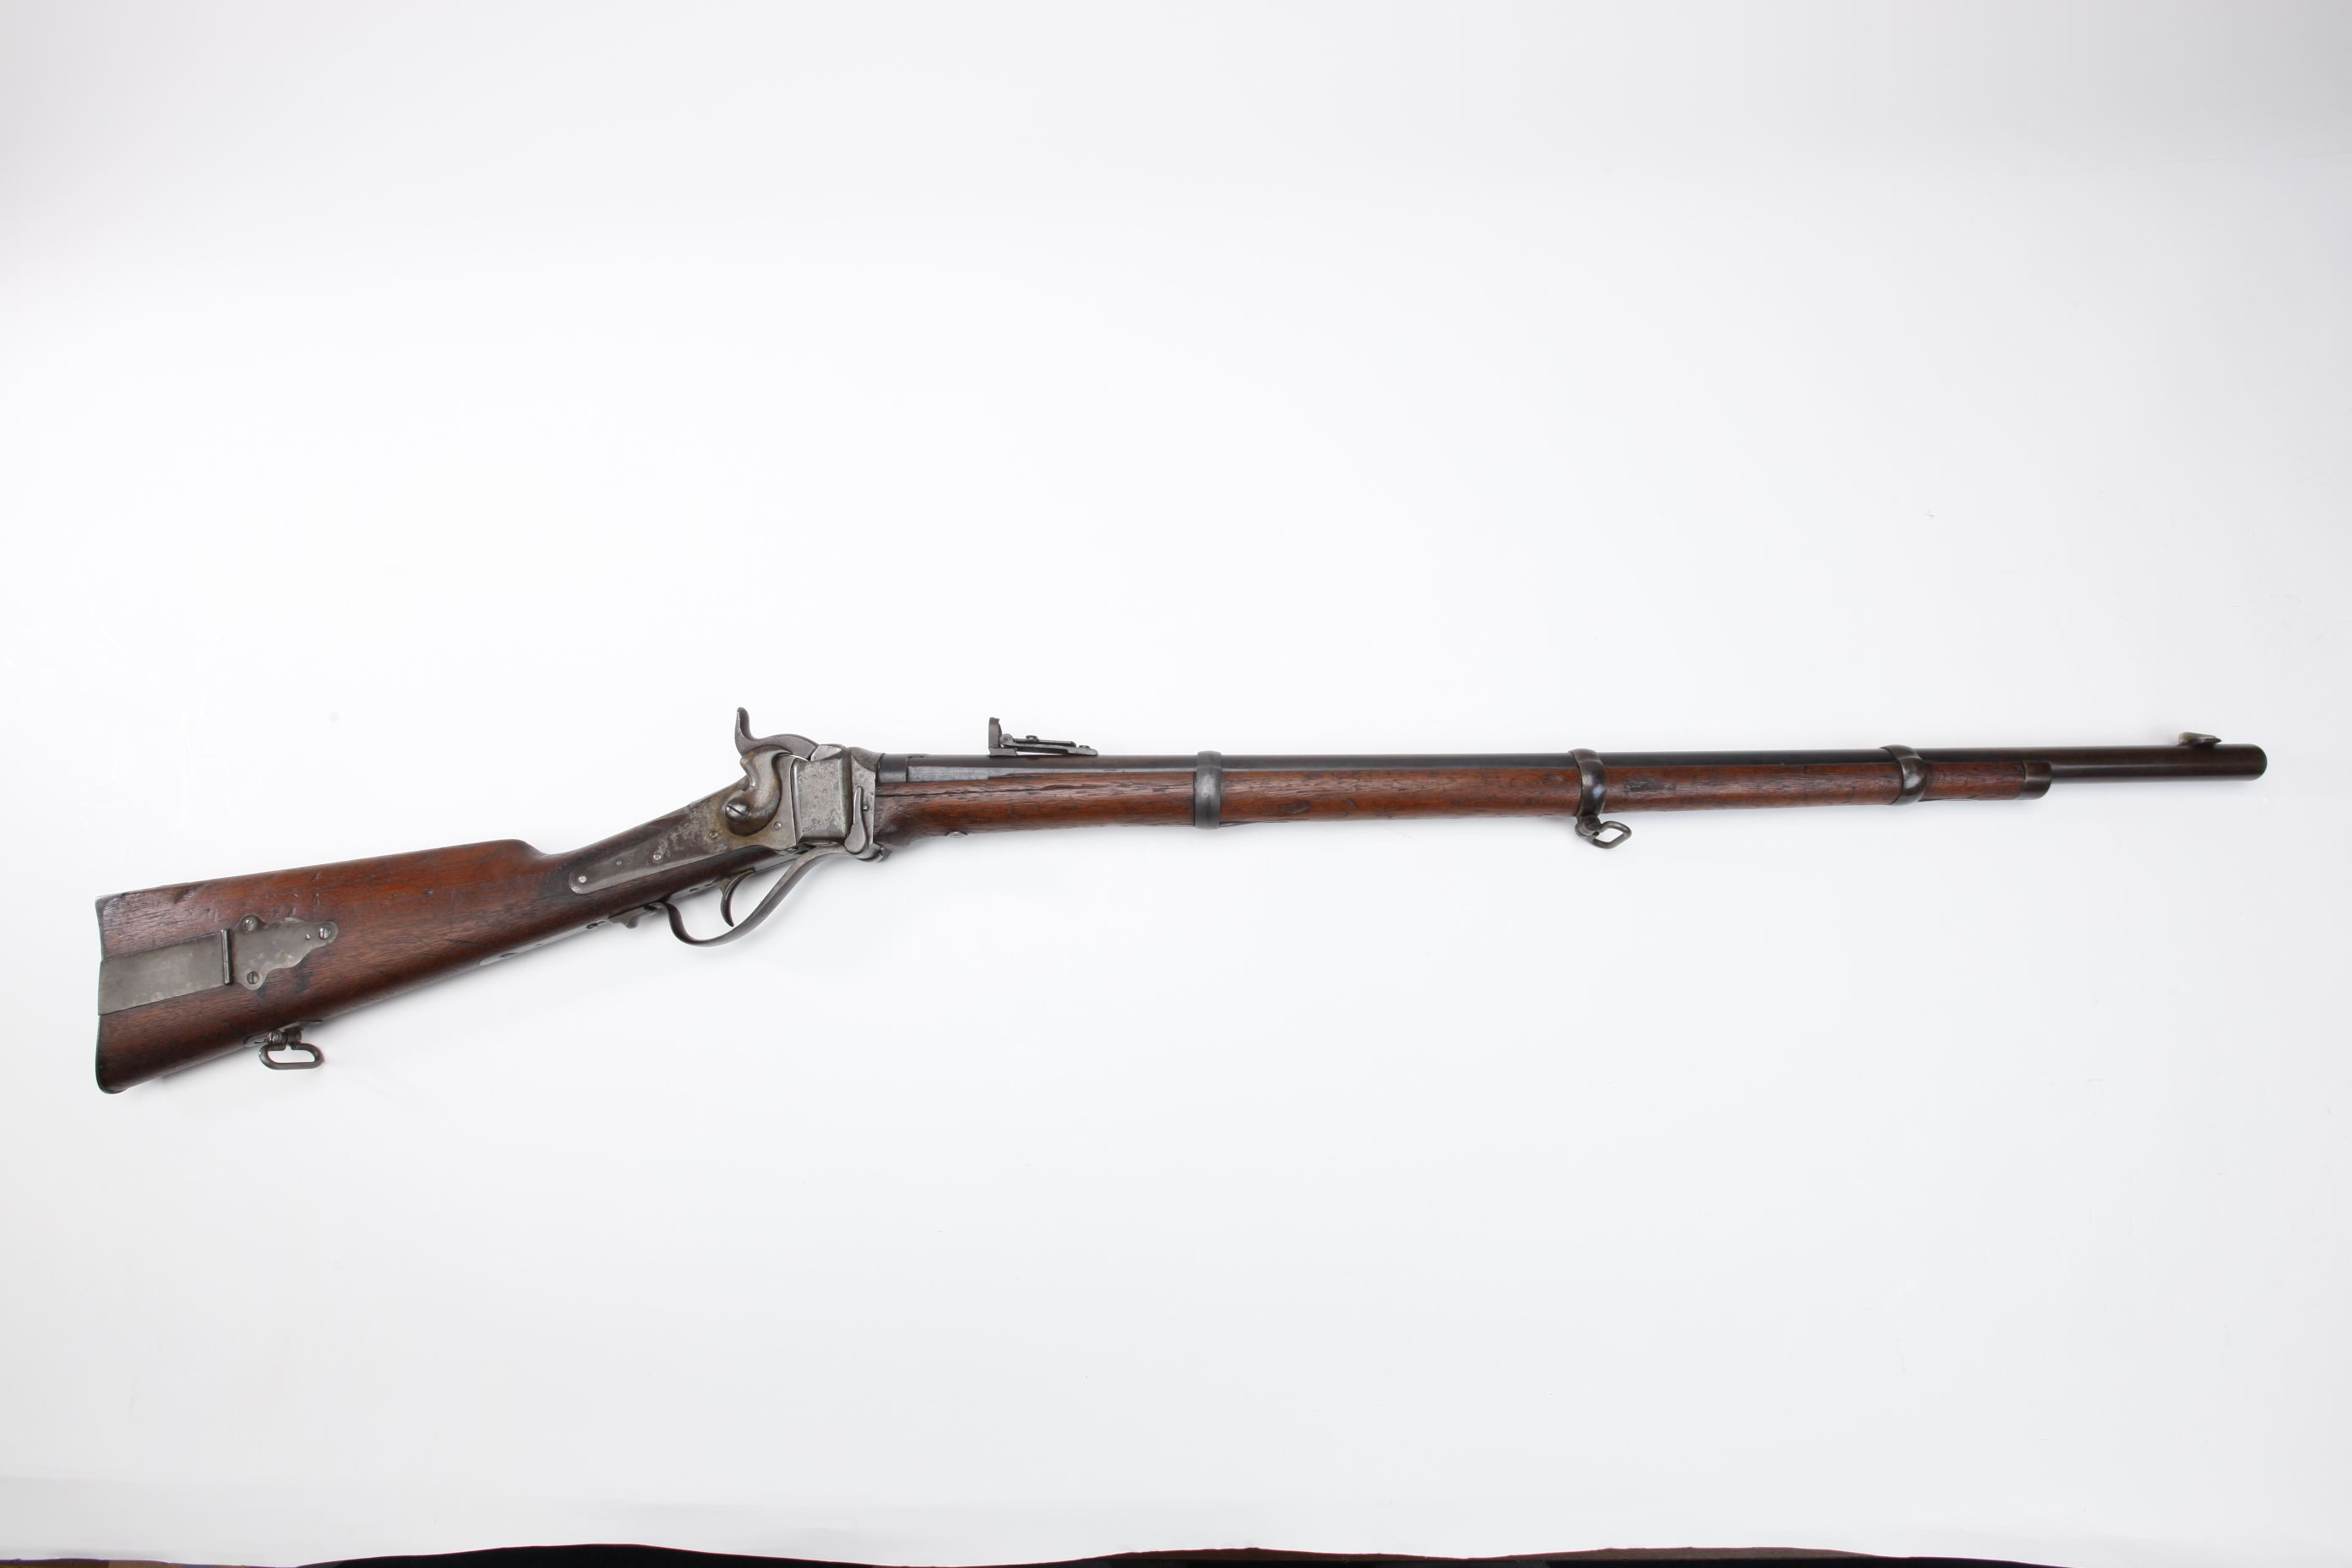 Sharps/Freund Bros. Model 1874 Falling Block Rifle